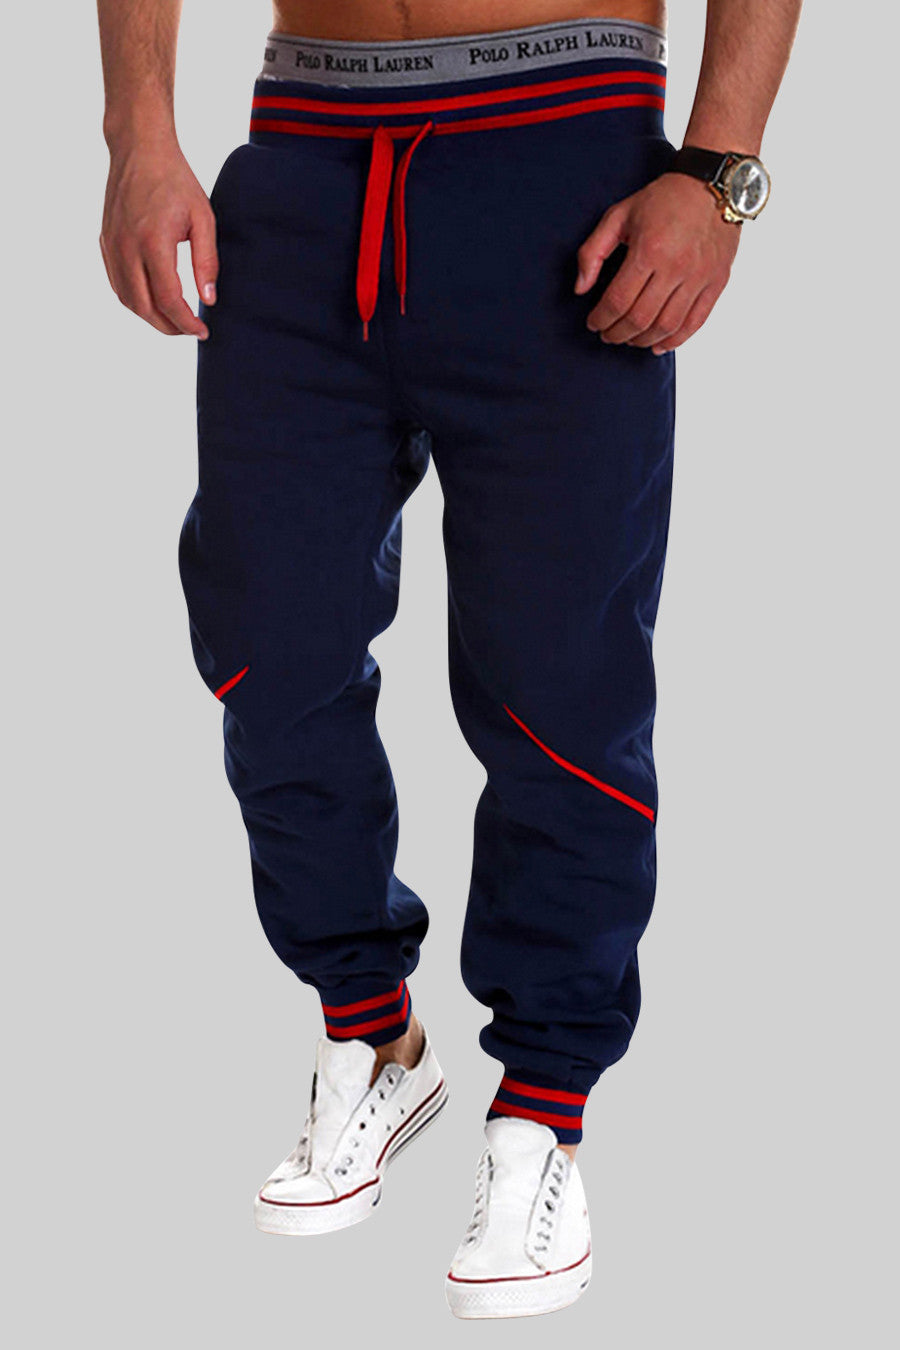 Elastic Waist Sweatpants In Navy